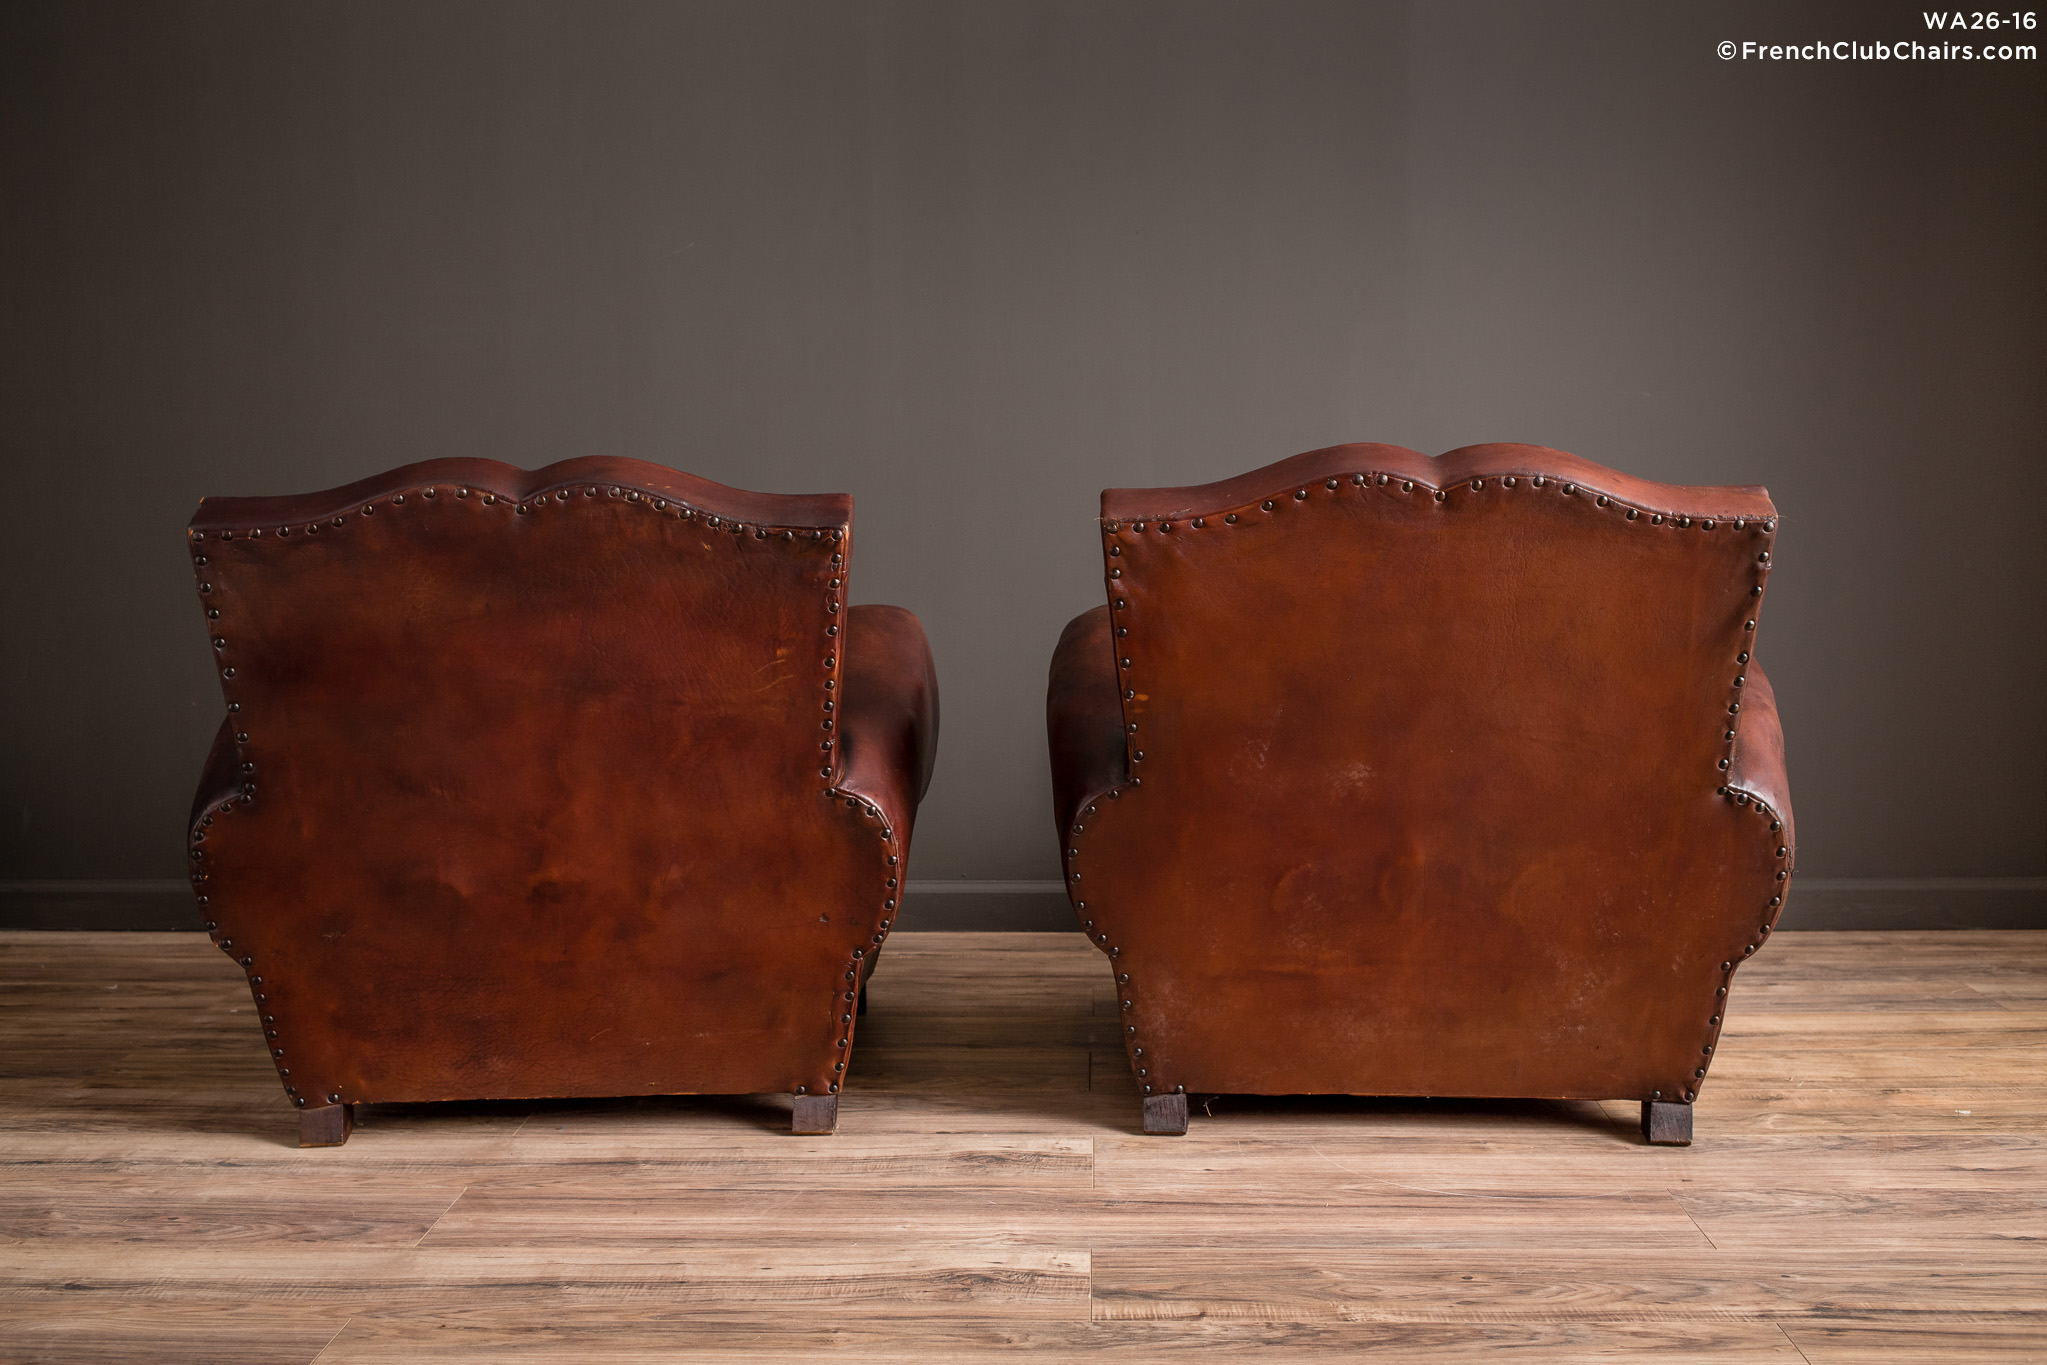 French Club Chairs By Williamu0027s Antiks | WA26 16 Royan Mustache Pair Of  Leather French Club Chairs | 1